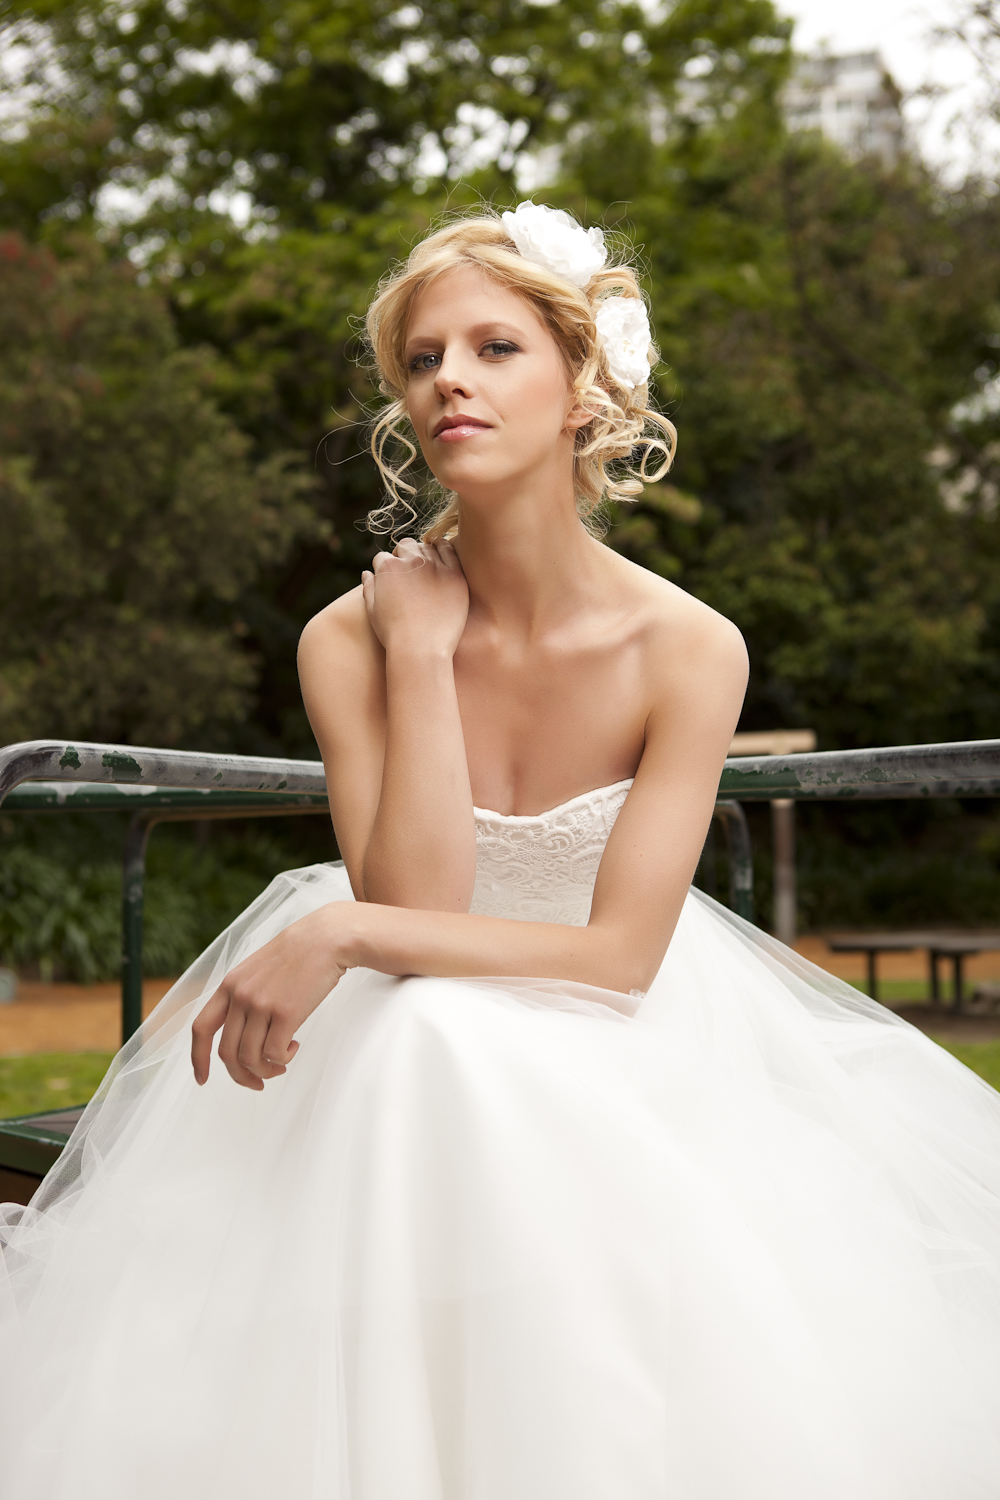 Rose bridal gown design_Tanya Anic _photography_Luke Drew_ 1.jpg